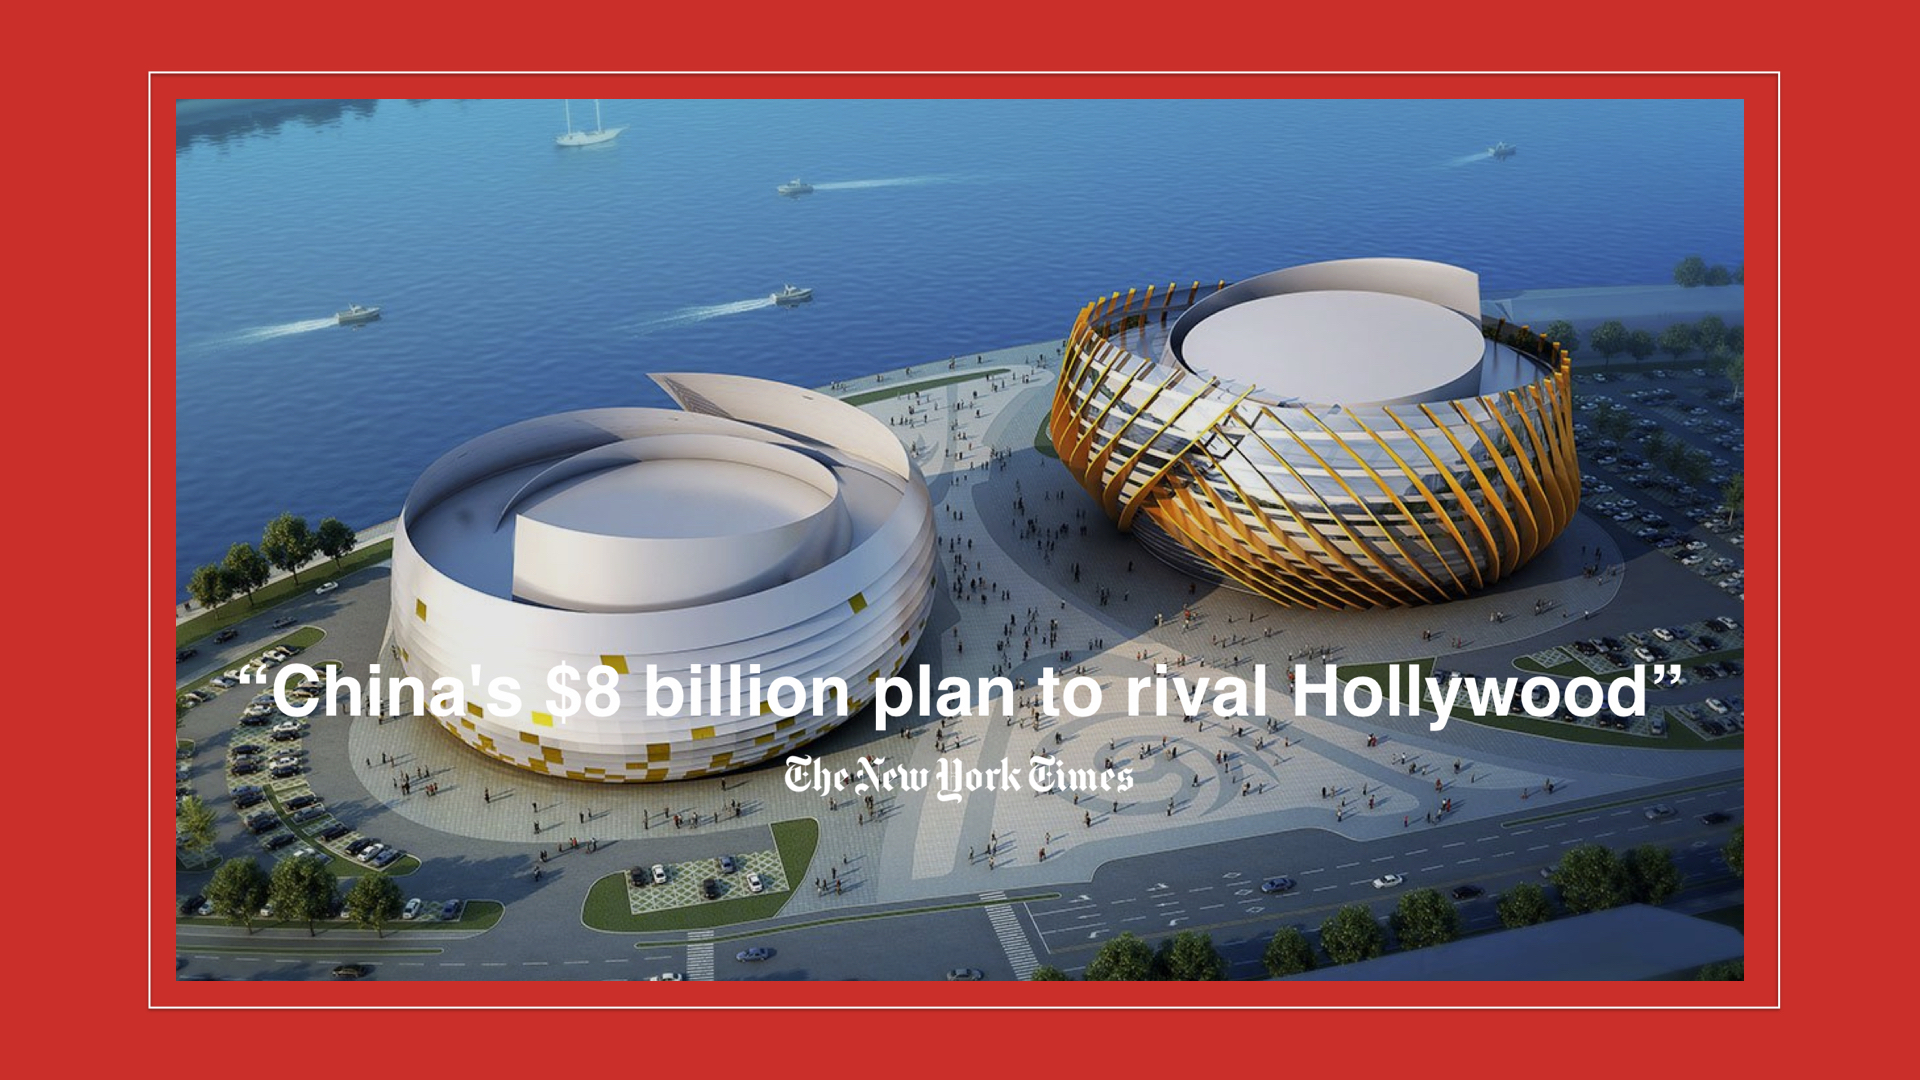 Wanda Group, embraced this chance to lead the global cinematic cooperation by opening the  Oriental Movie Metropolis , the world's largest studio.